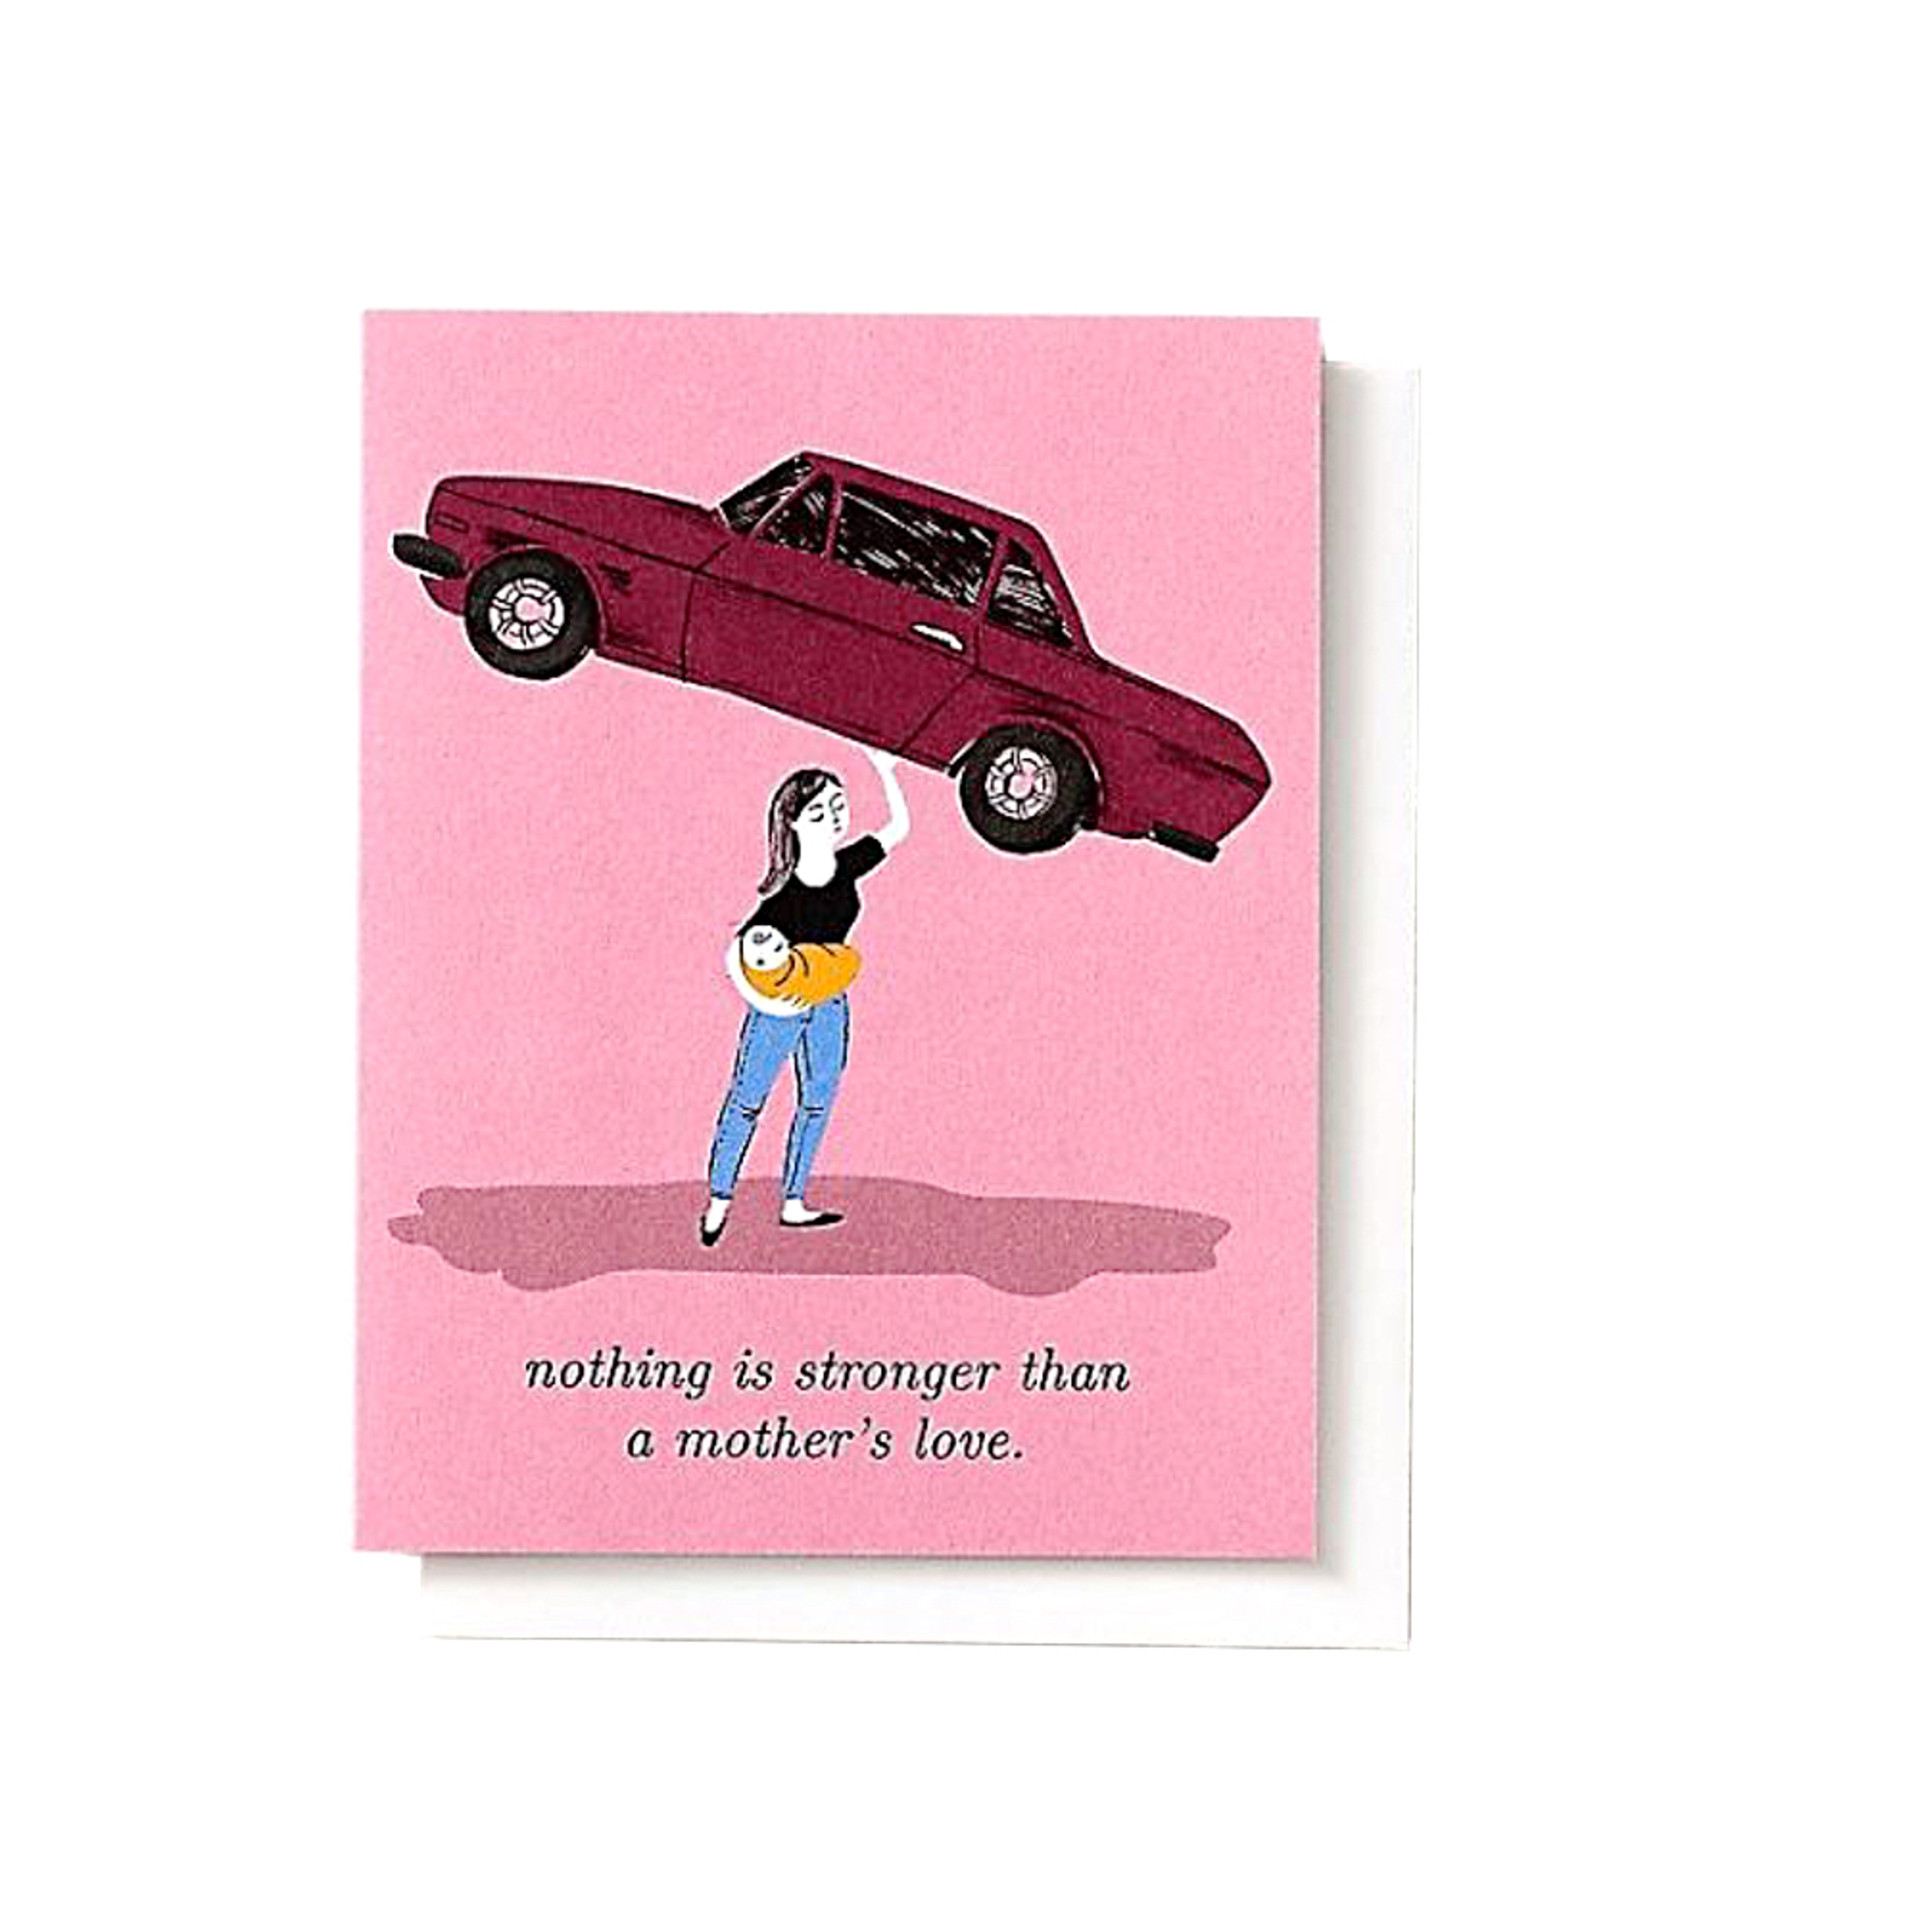 Nothing Is Stronger Than A Mother's Love Greeting Card